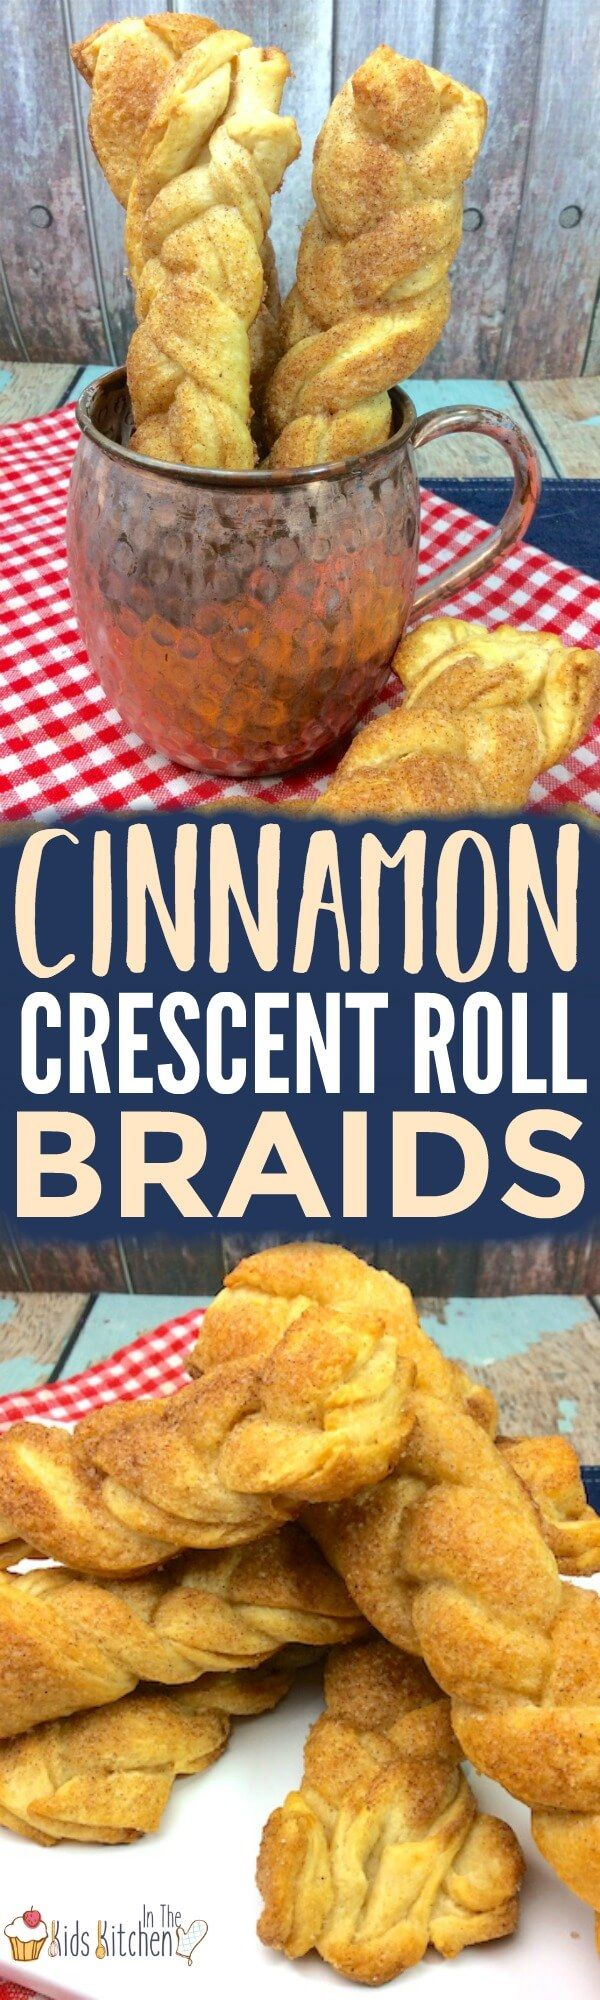 A fun twist on breakfast — the whole family will love these easy Cinnamon Crescent Roll Braids! Perfect for holidays or parties!